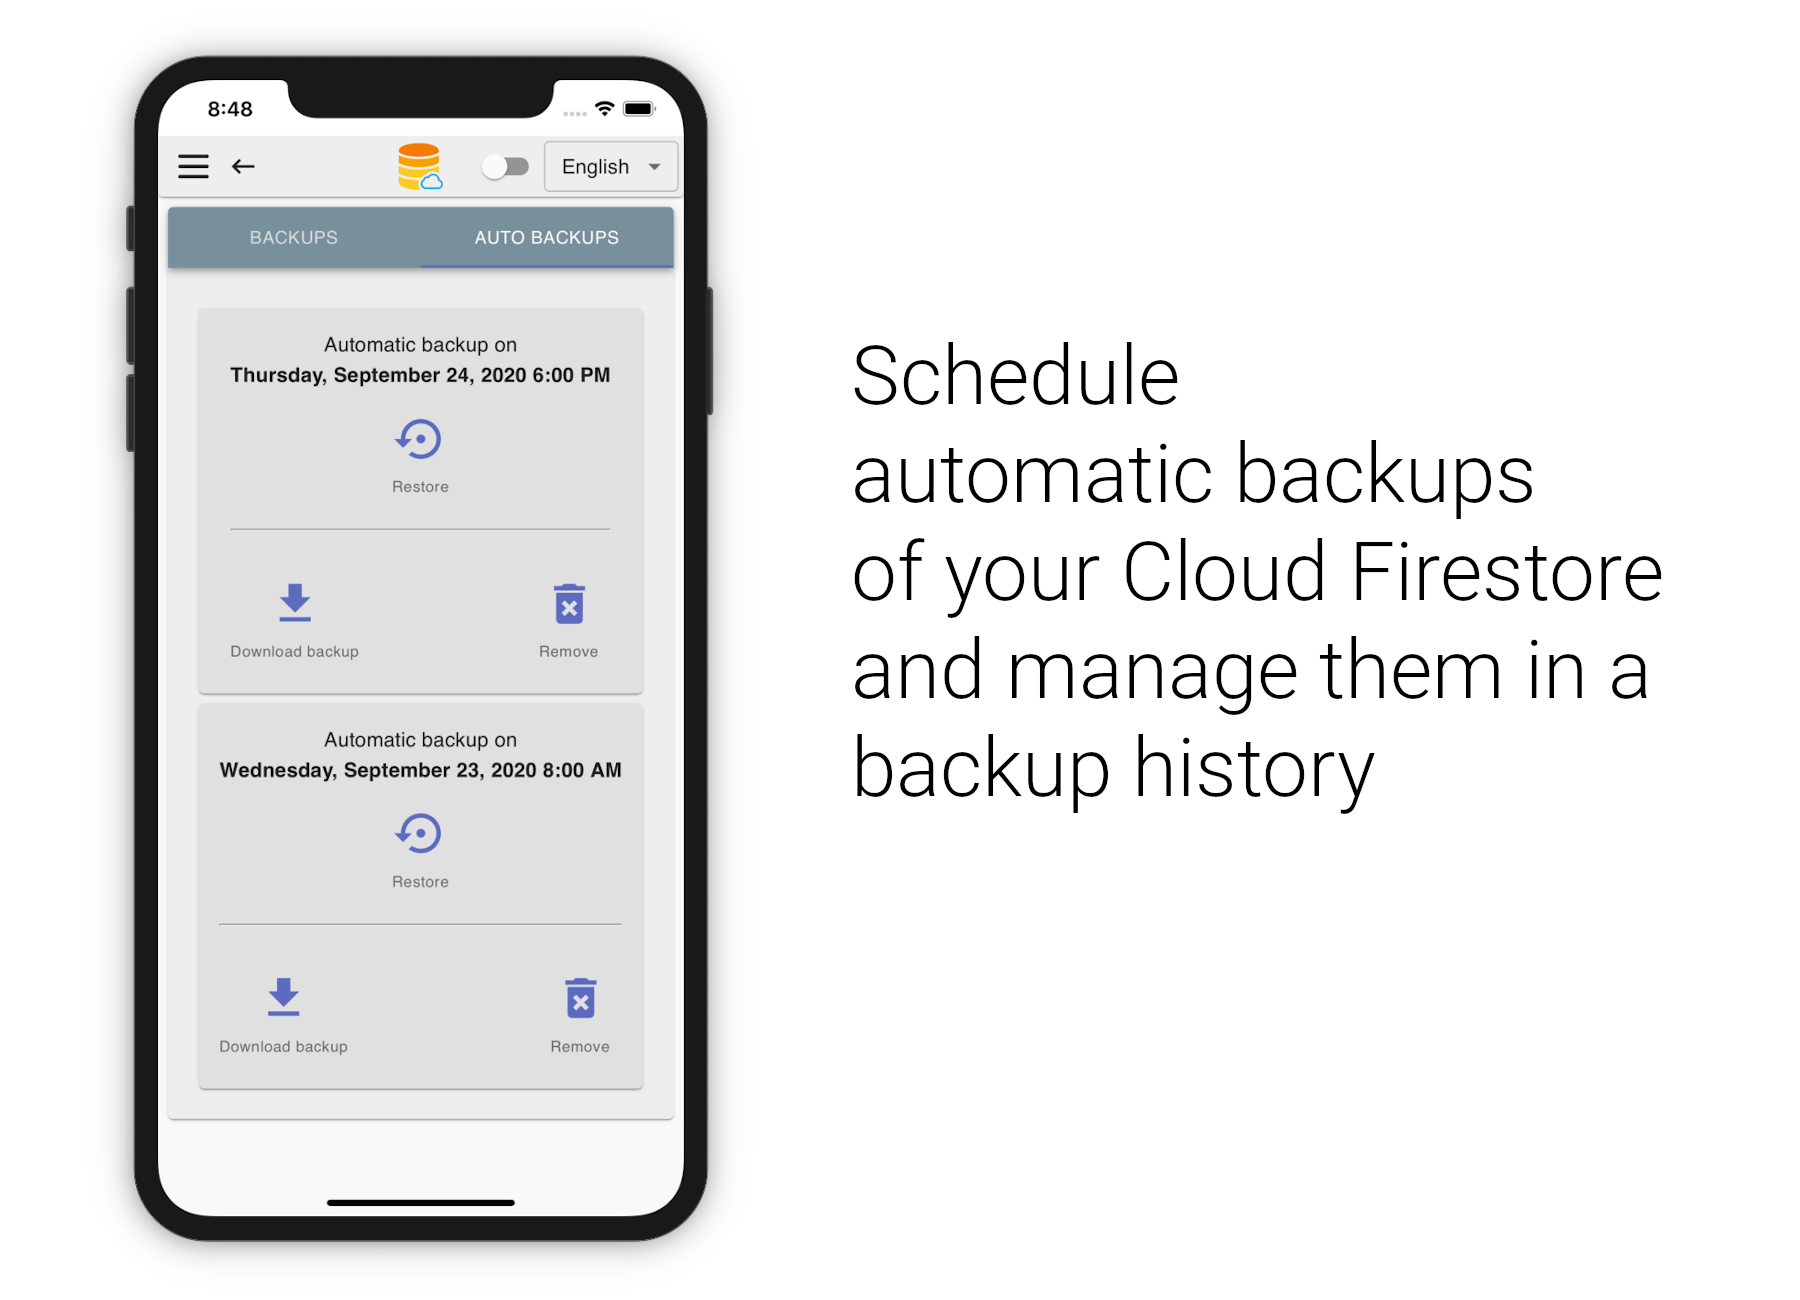 Firebase schedule Cloud Firestore backups to Google Cloud Storage and schow them in backup history